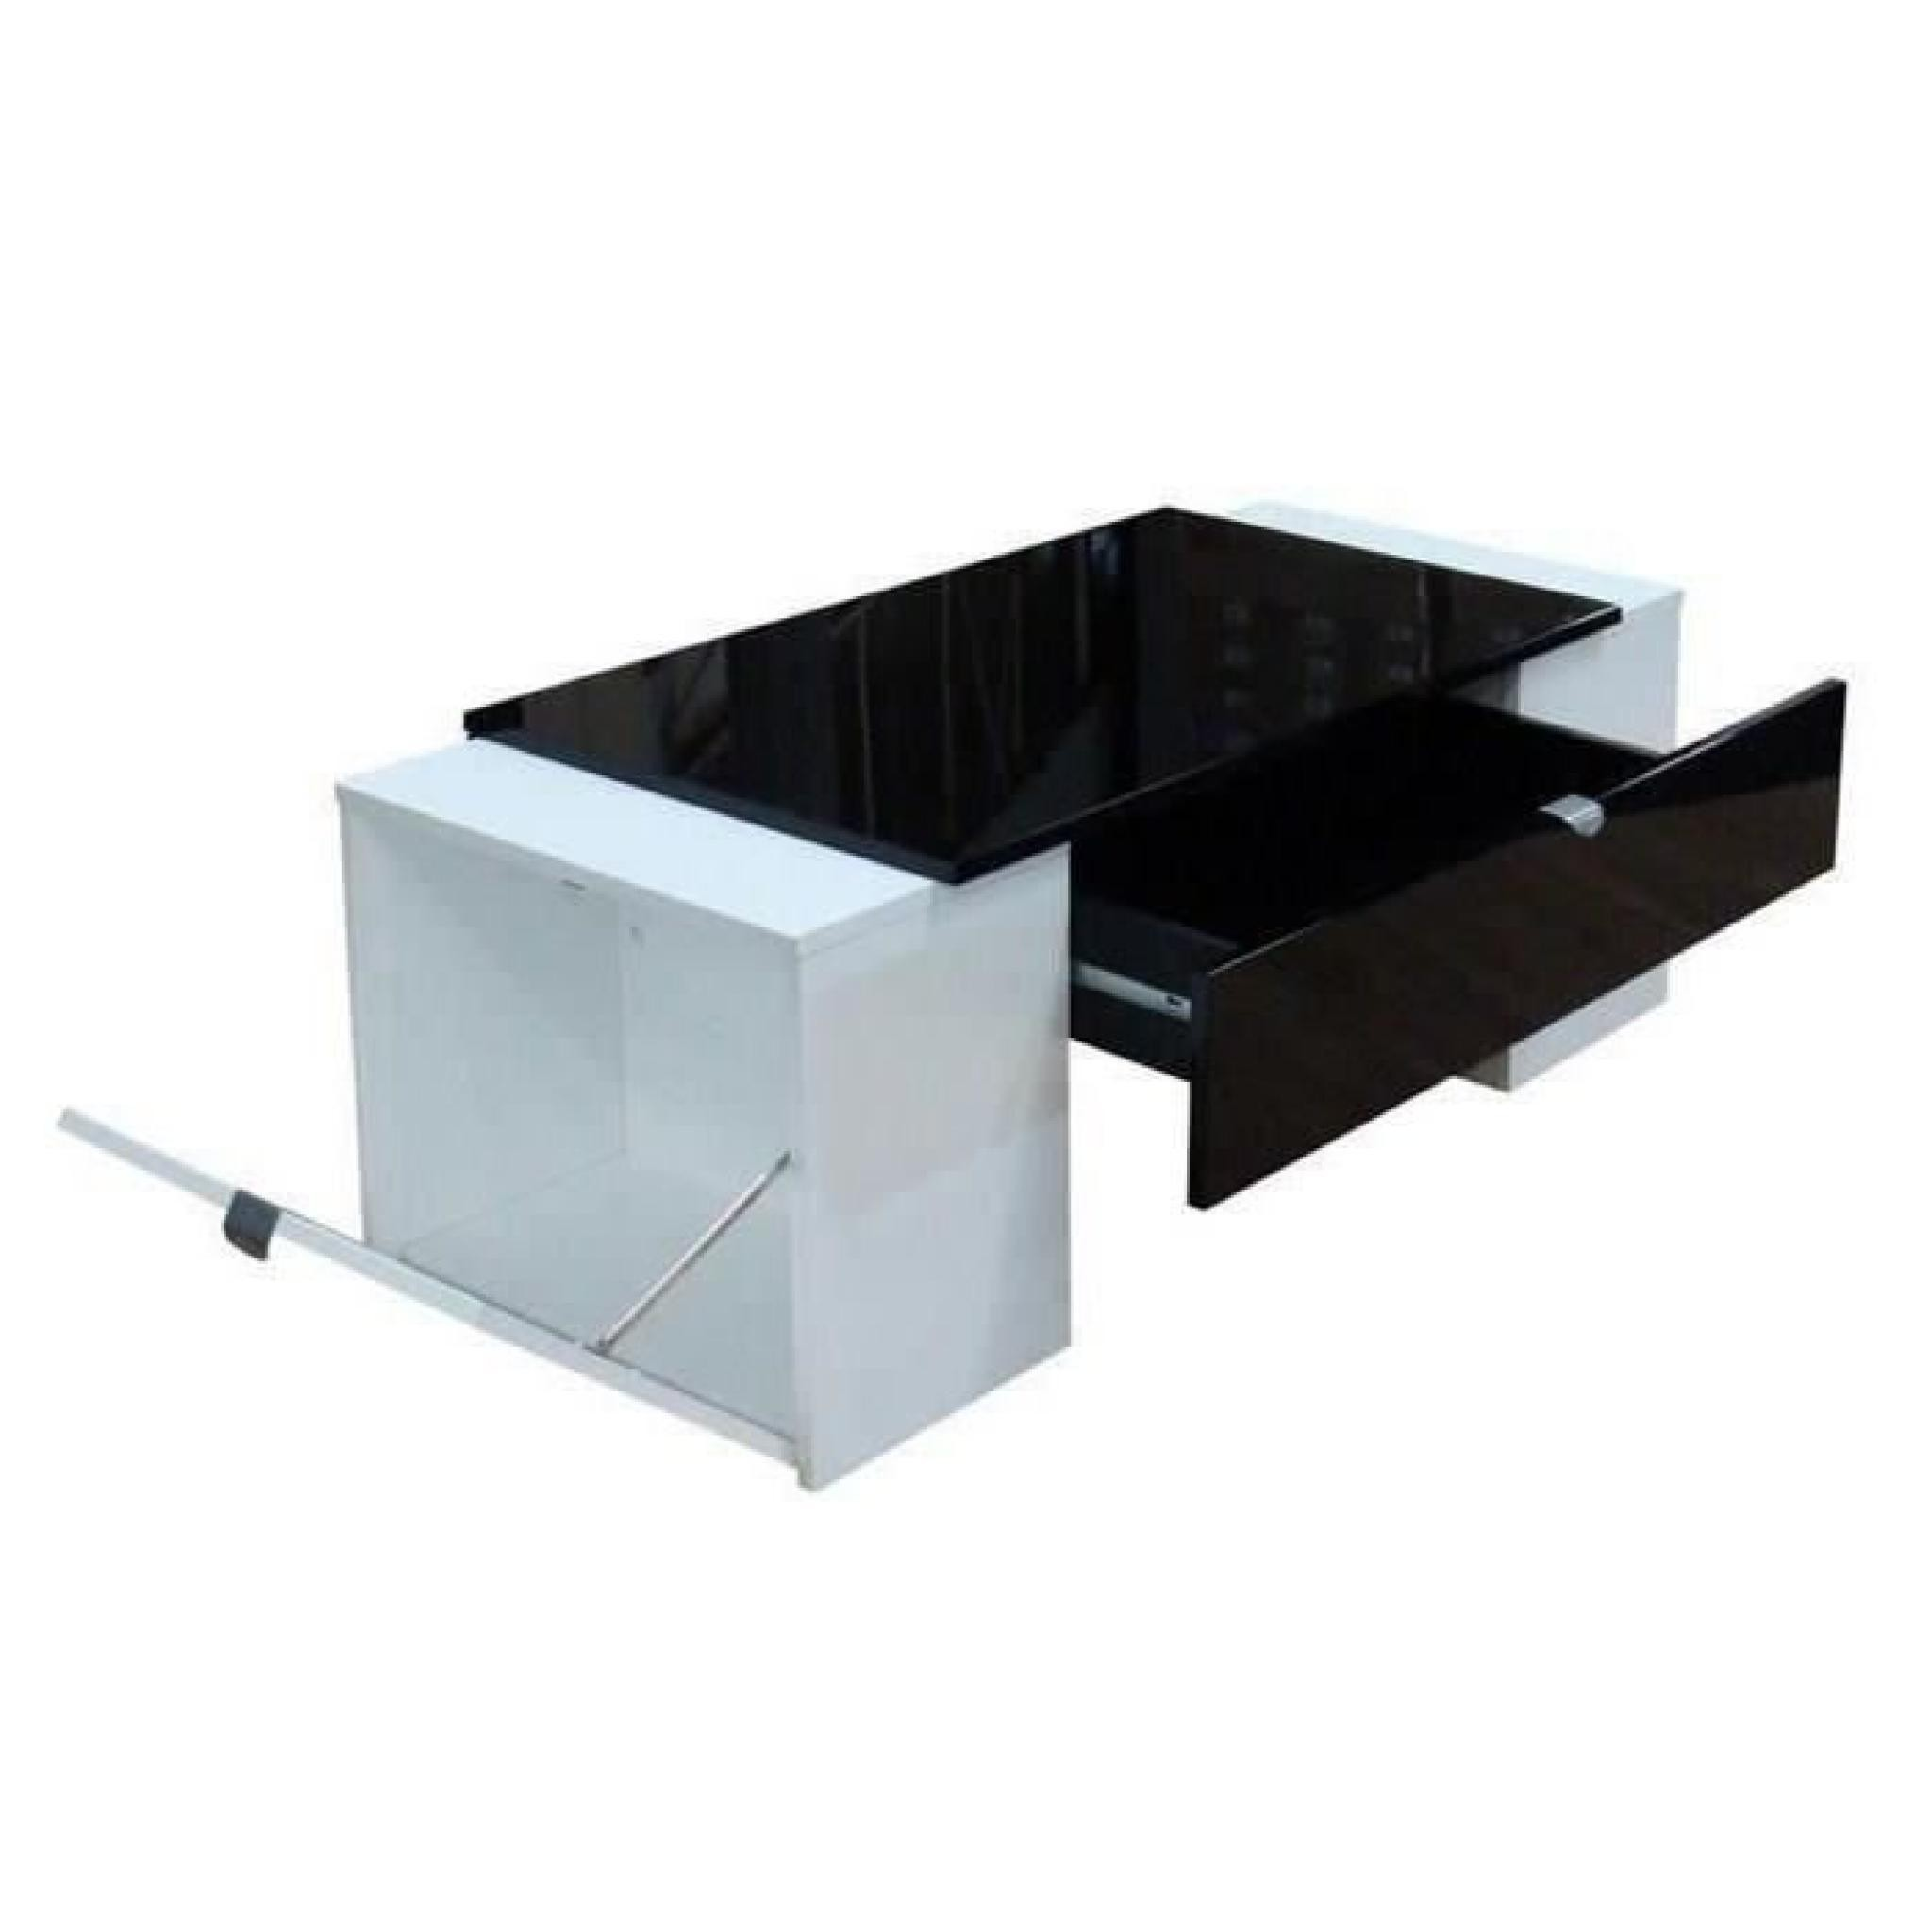 Table Haute Modulable Table Basse Luck Ultra Design Et Modulable Table Basse Noire Et Bl